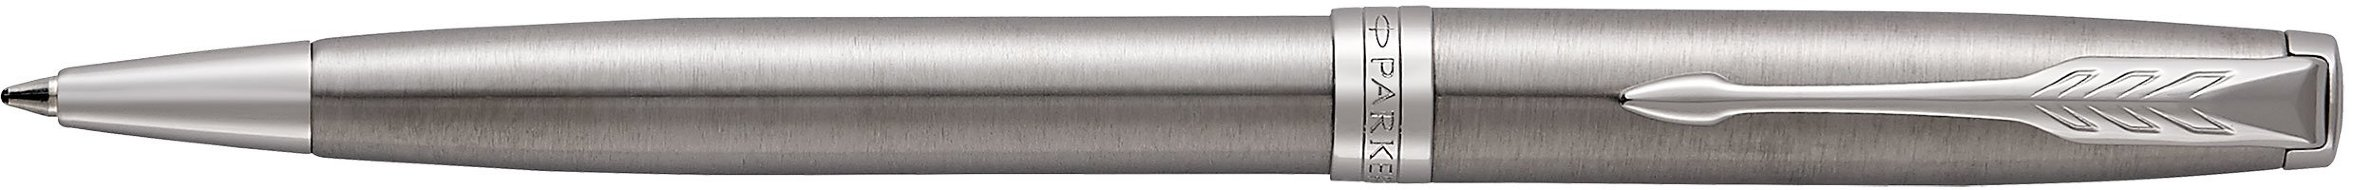 Шариковая ручка Parker Sonnet Core K526, Stainless Steel CT